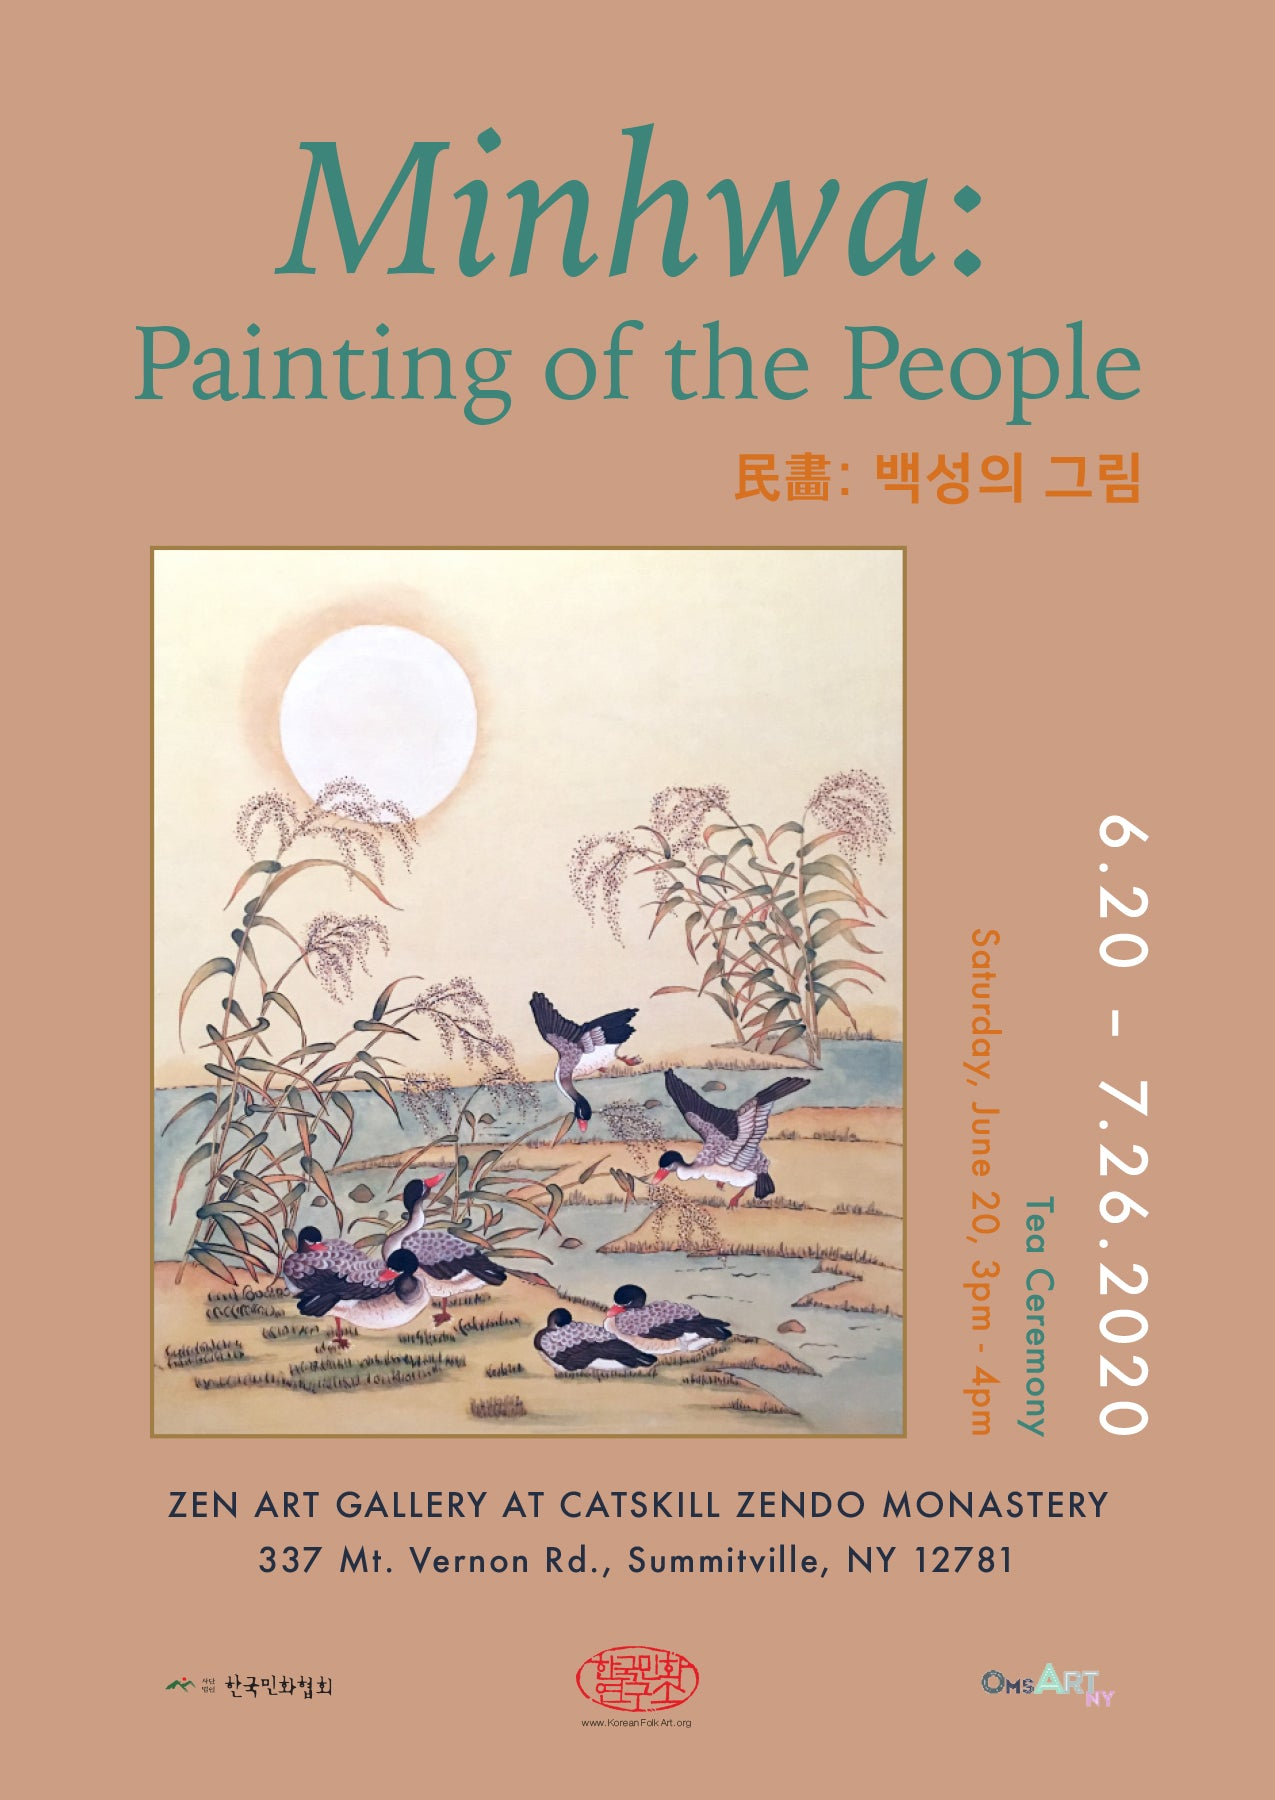 Minhwa: Painting of the People